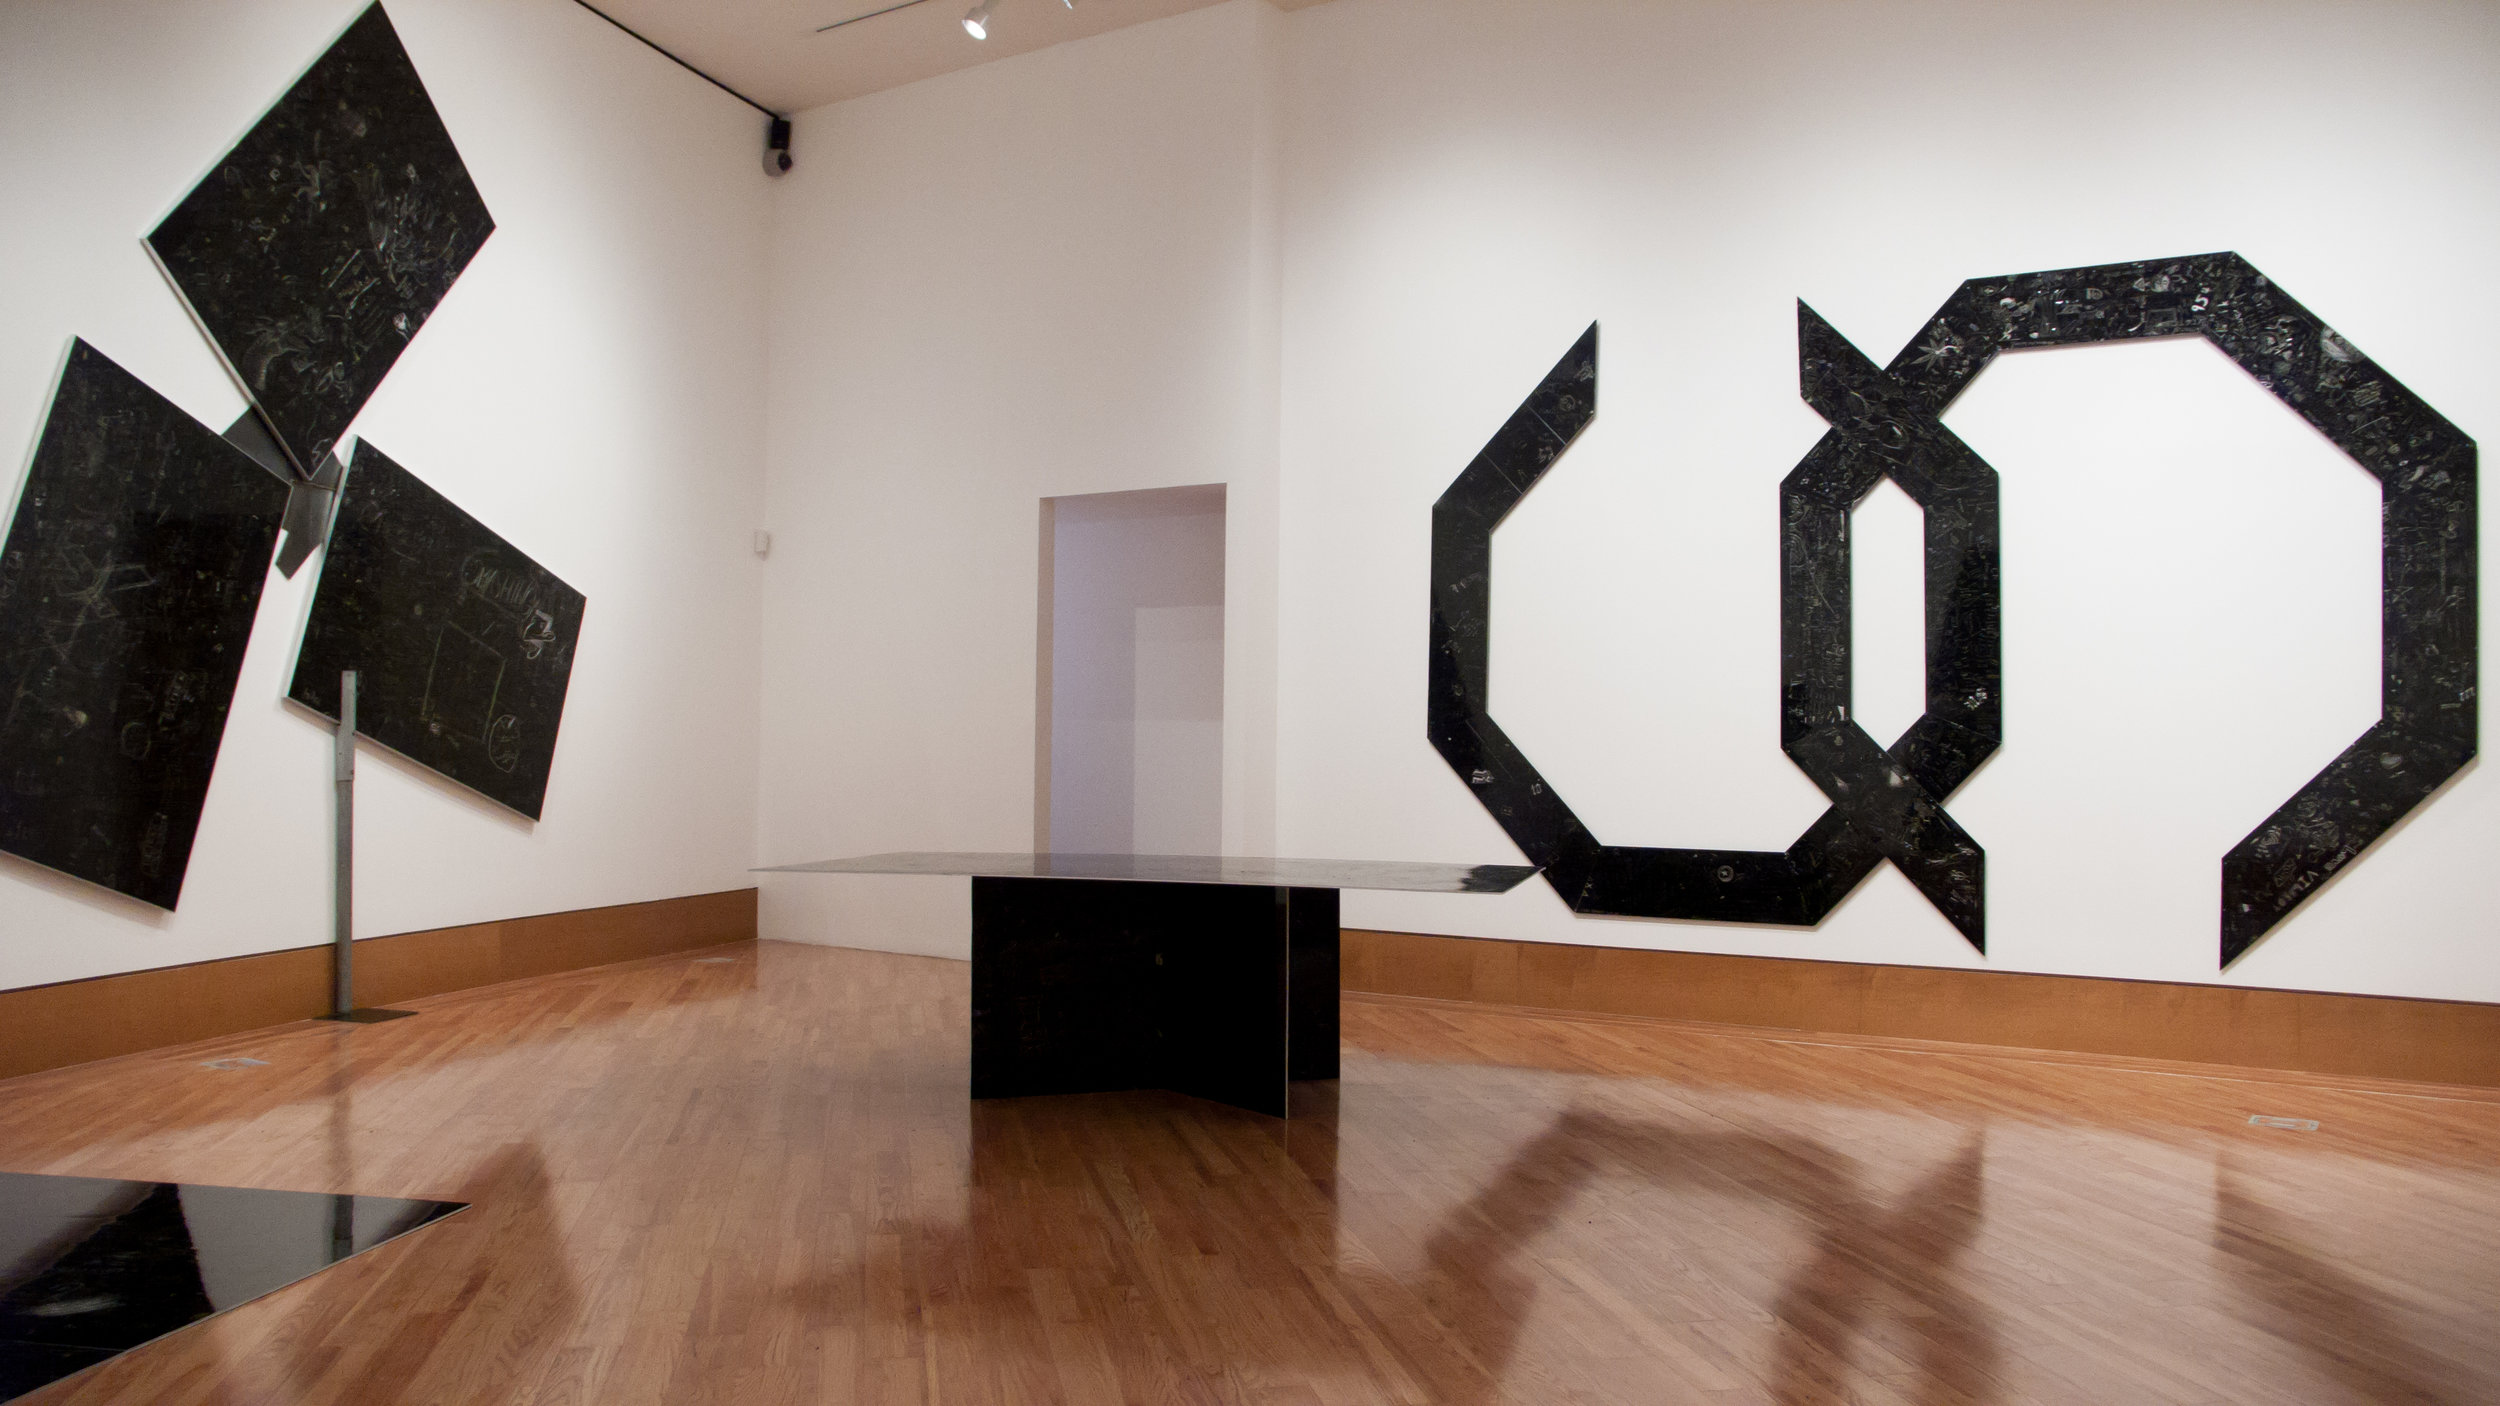 Installation view of P.S. at the Patrica and Phillip Frost Art Museum, 2012